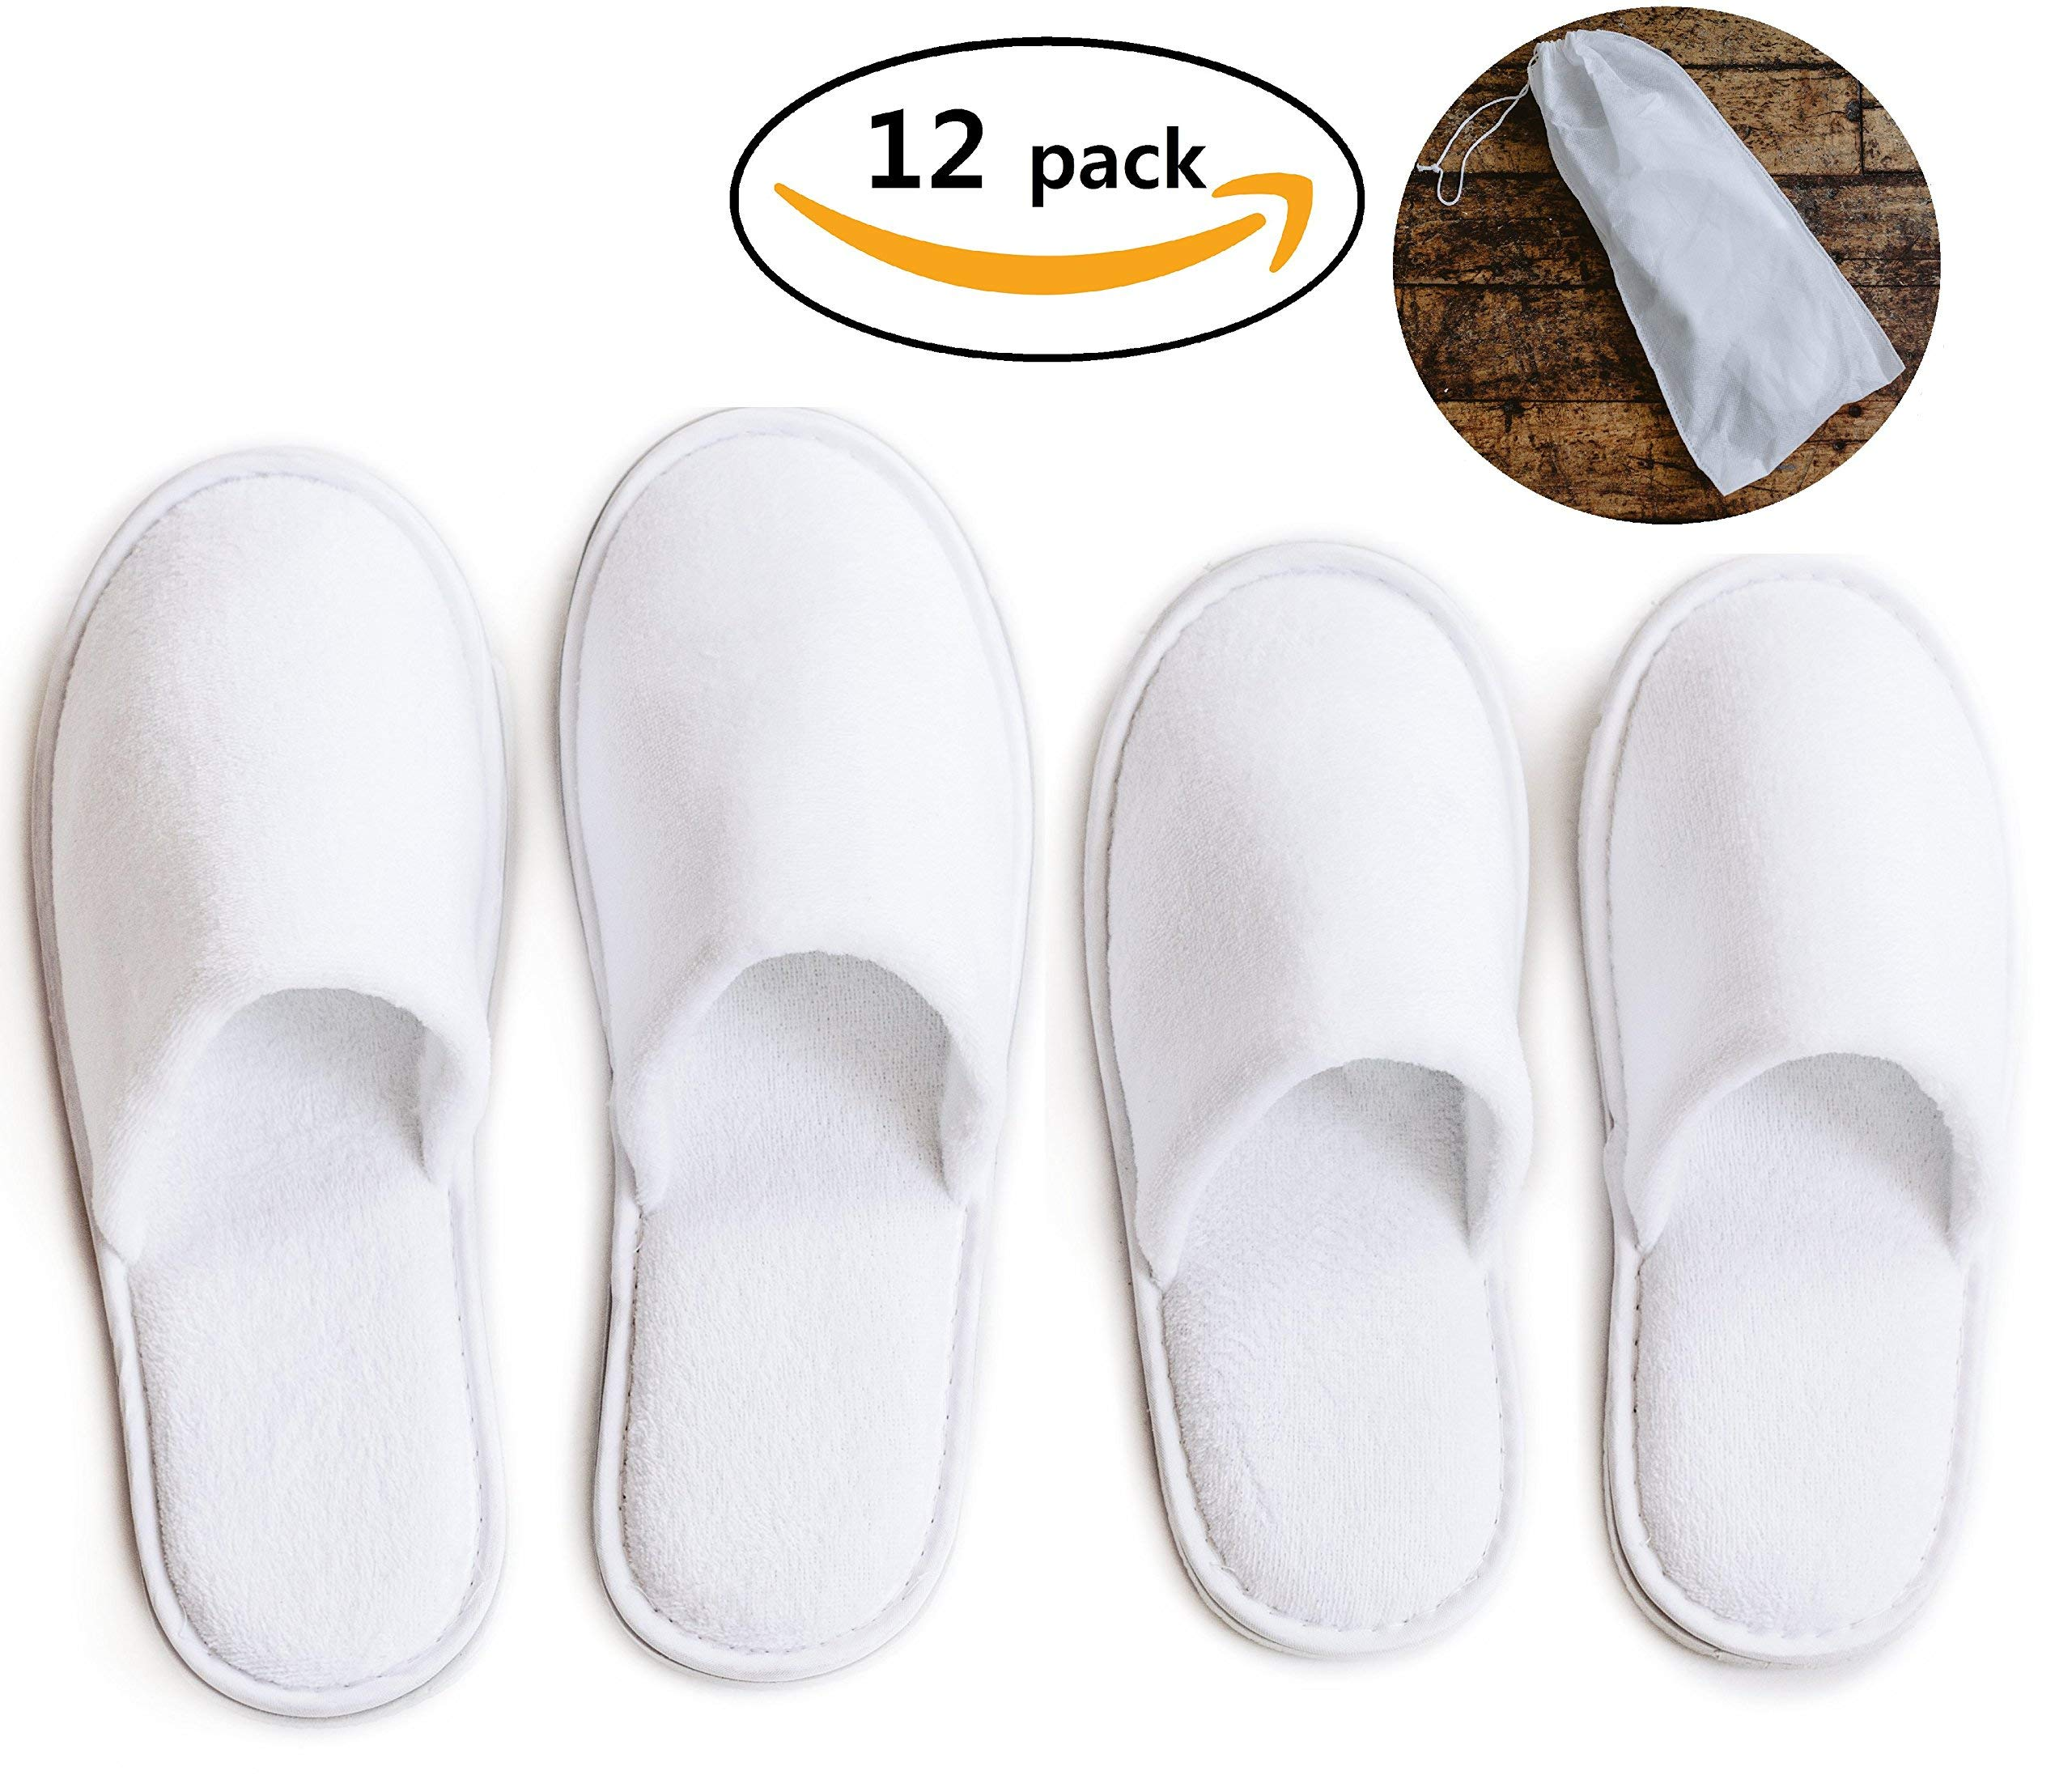 5791a3cf673a Modlux spa slippers pairs of cotton velvet closed toe slippers with travel  bags jpg 2560x2193 Cloded